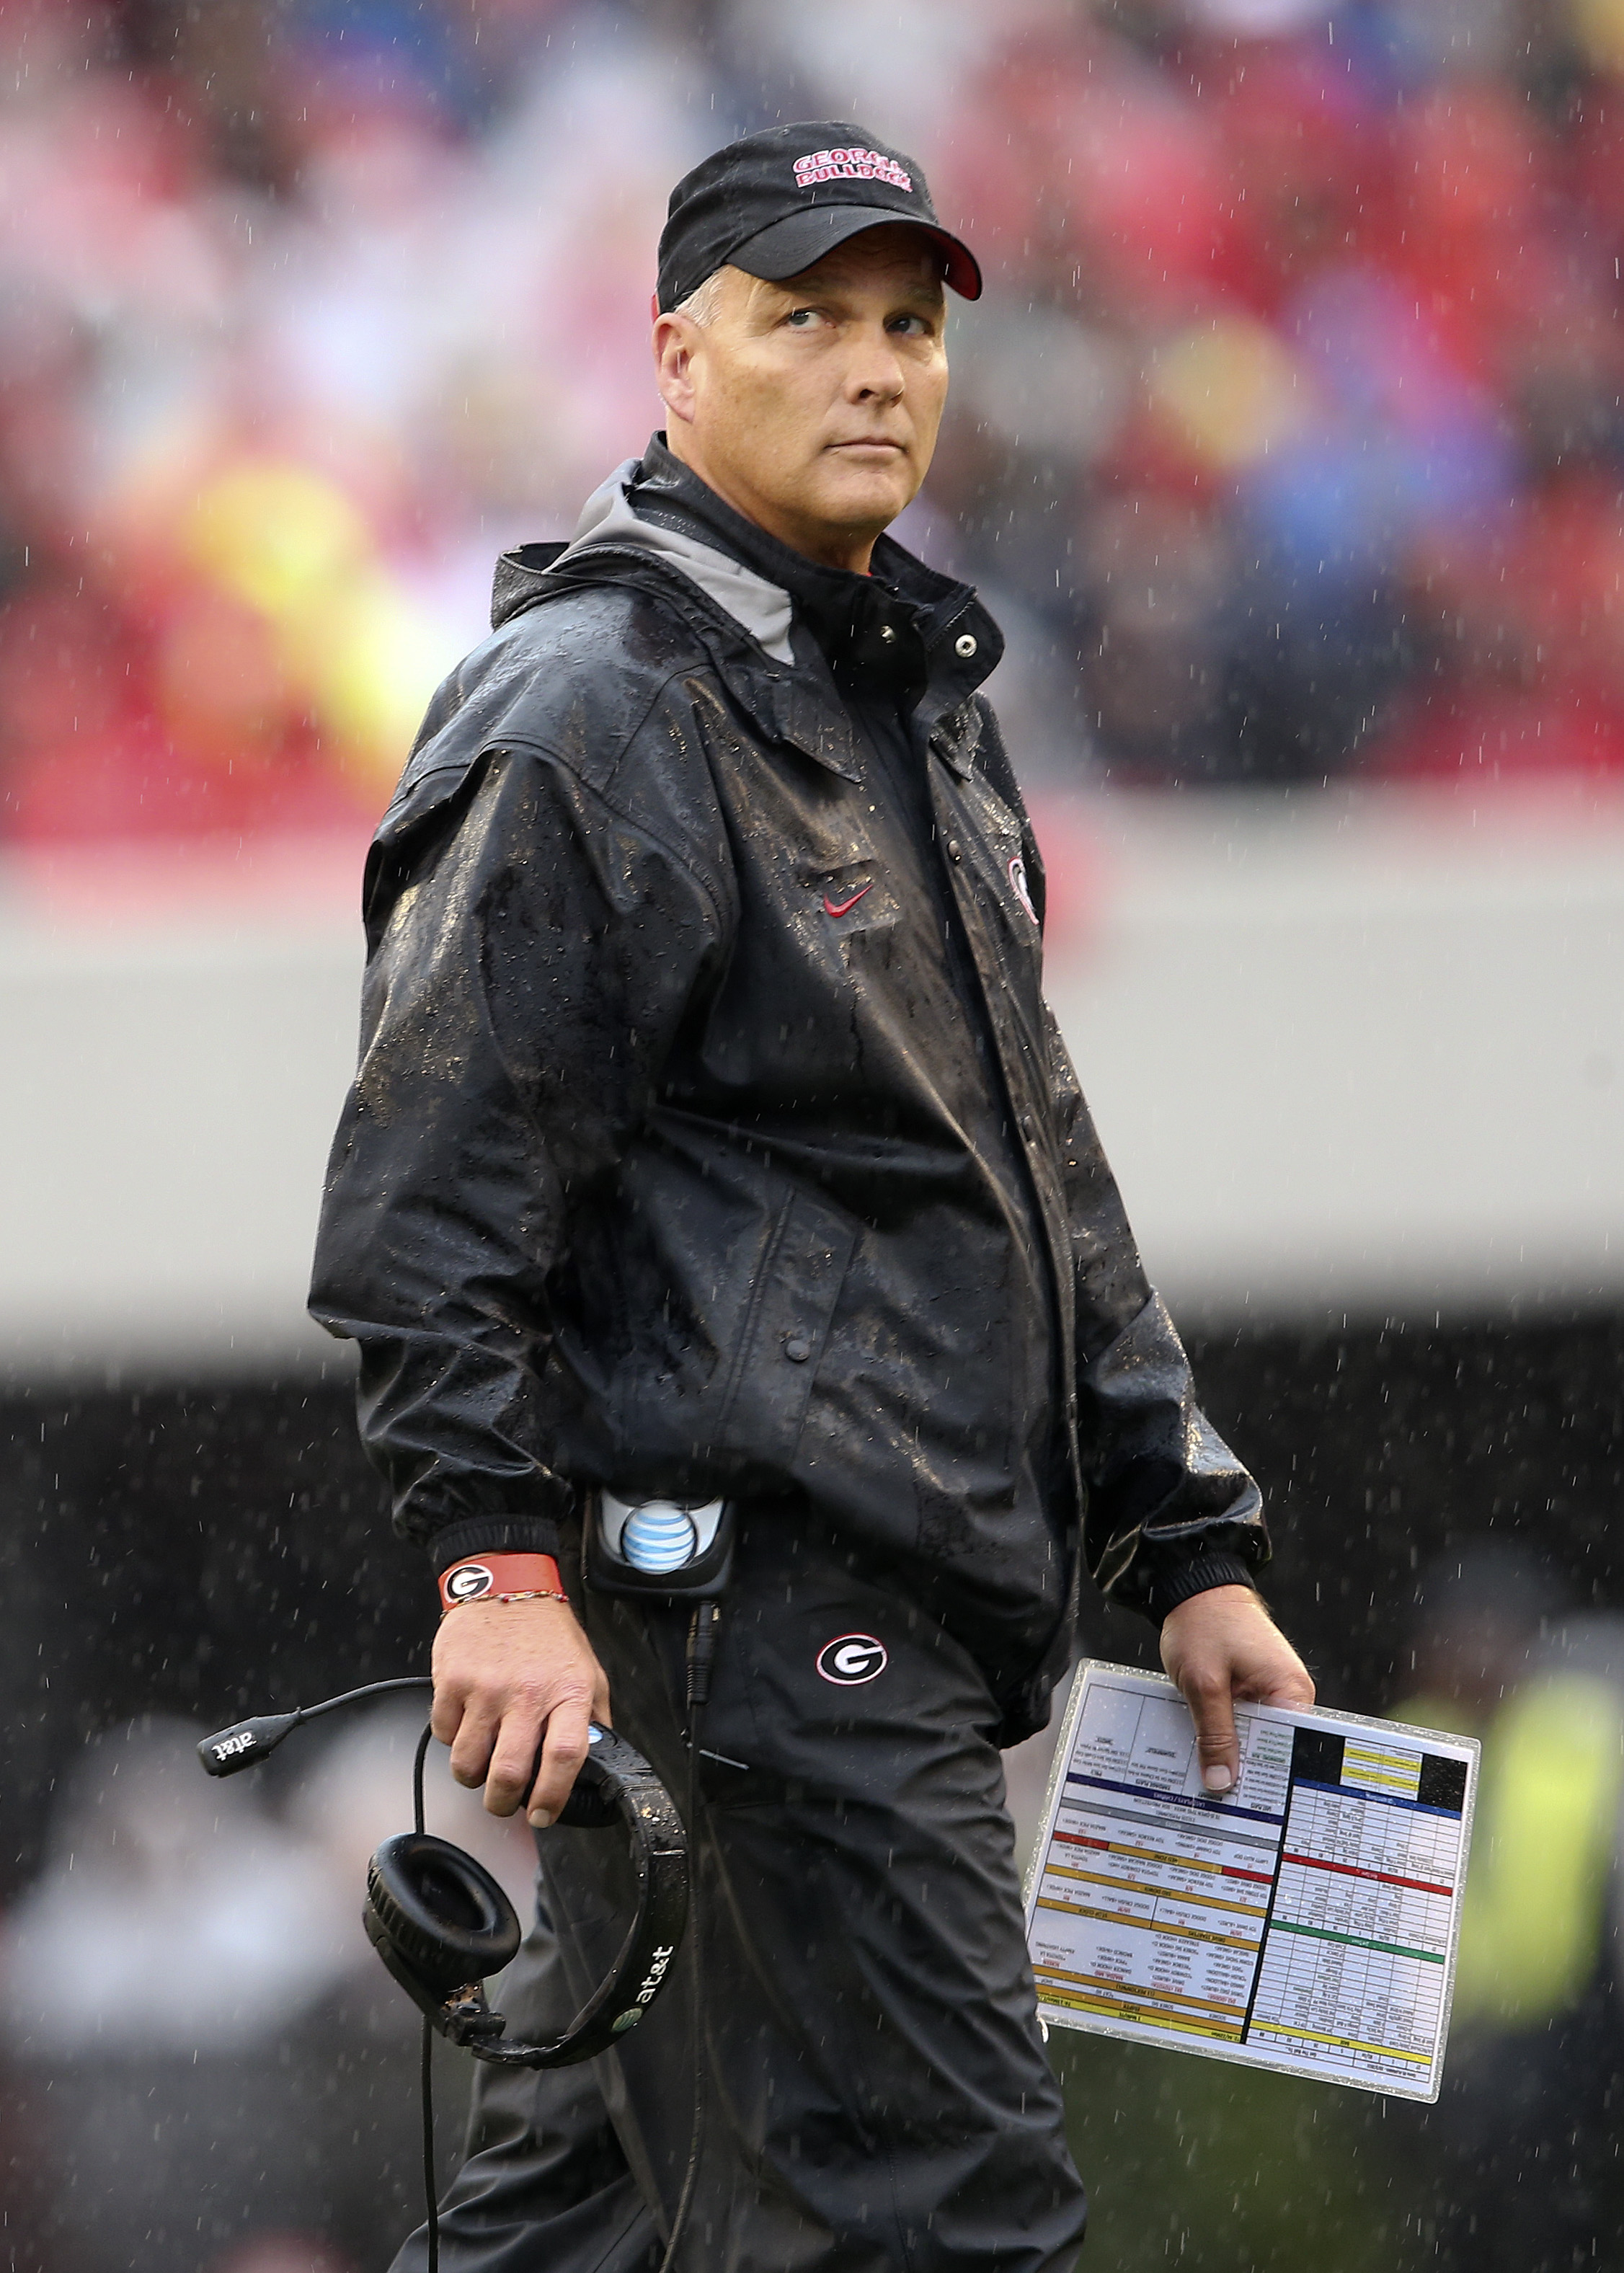 Georgia head coach Mark Richt walks back to the sideline after a timeout in the first half of an NCAA college football game against Alabama, Saturday, Oct. 3, 2015, in Athens, Ga. (AP Photo/John Bazemore)